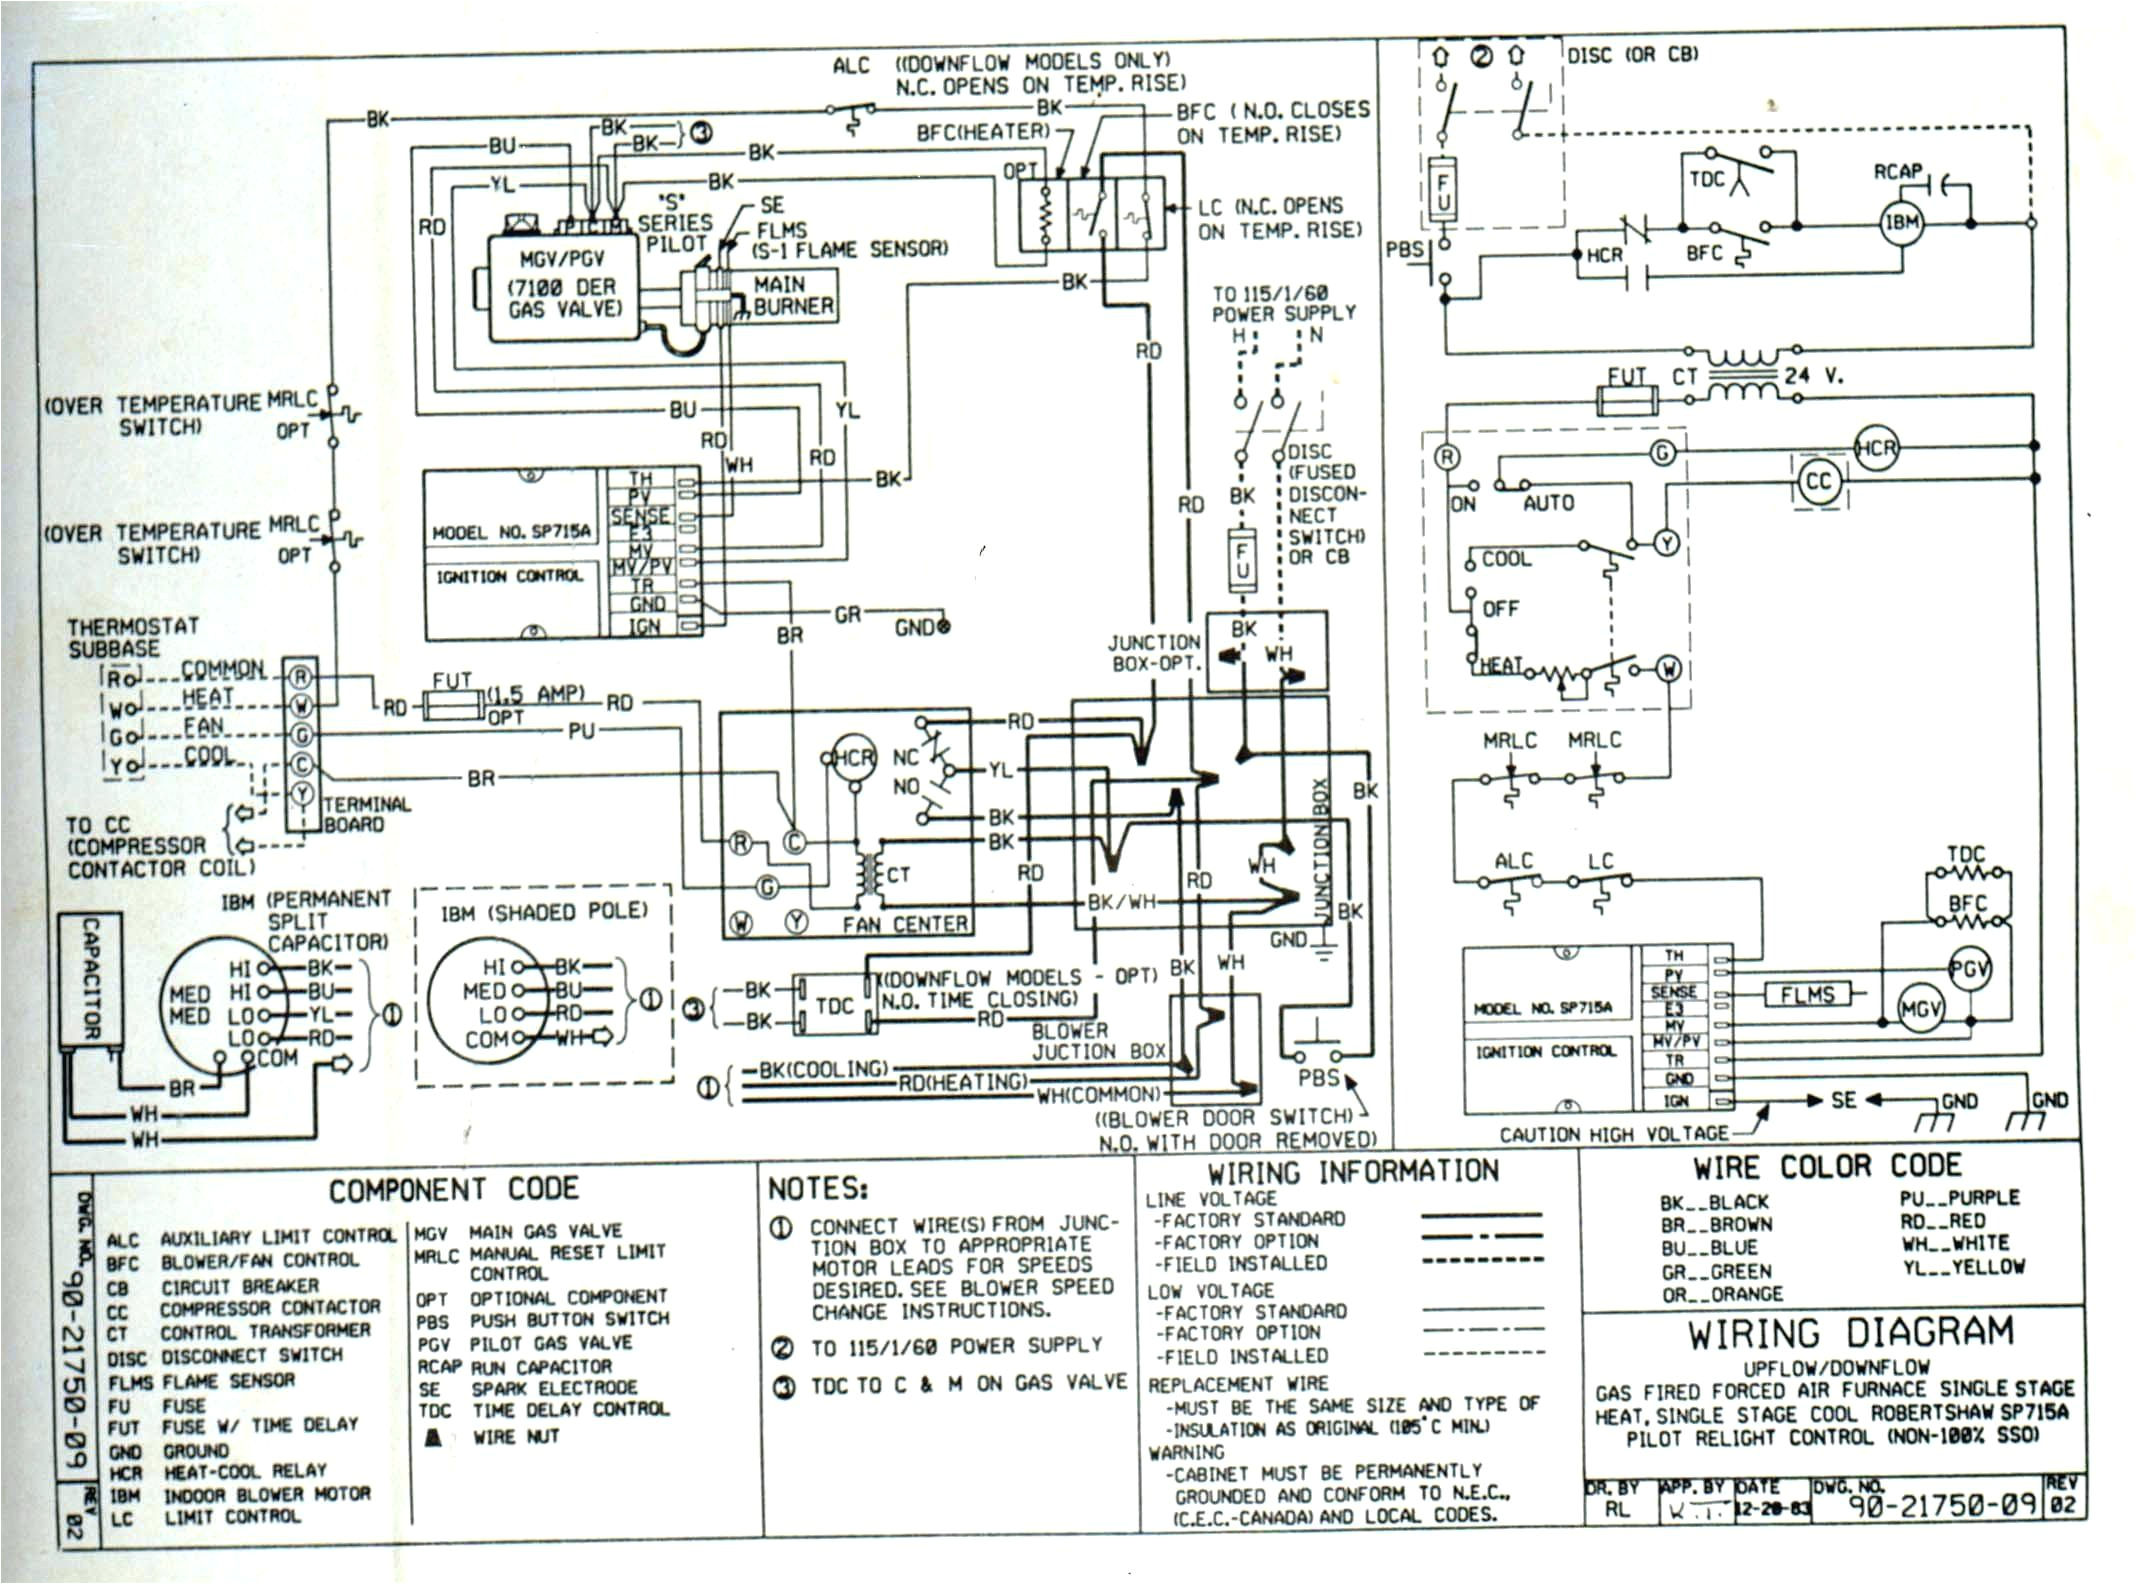 payne air conditioners schematic auto wiring diagram database payne schematic diagram